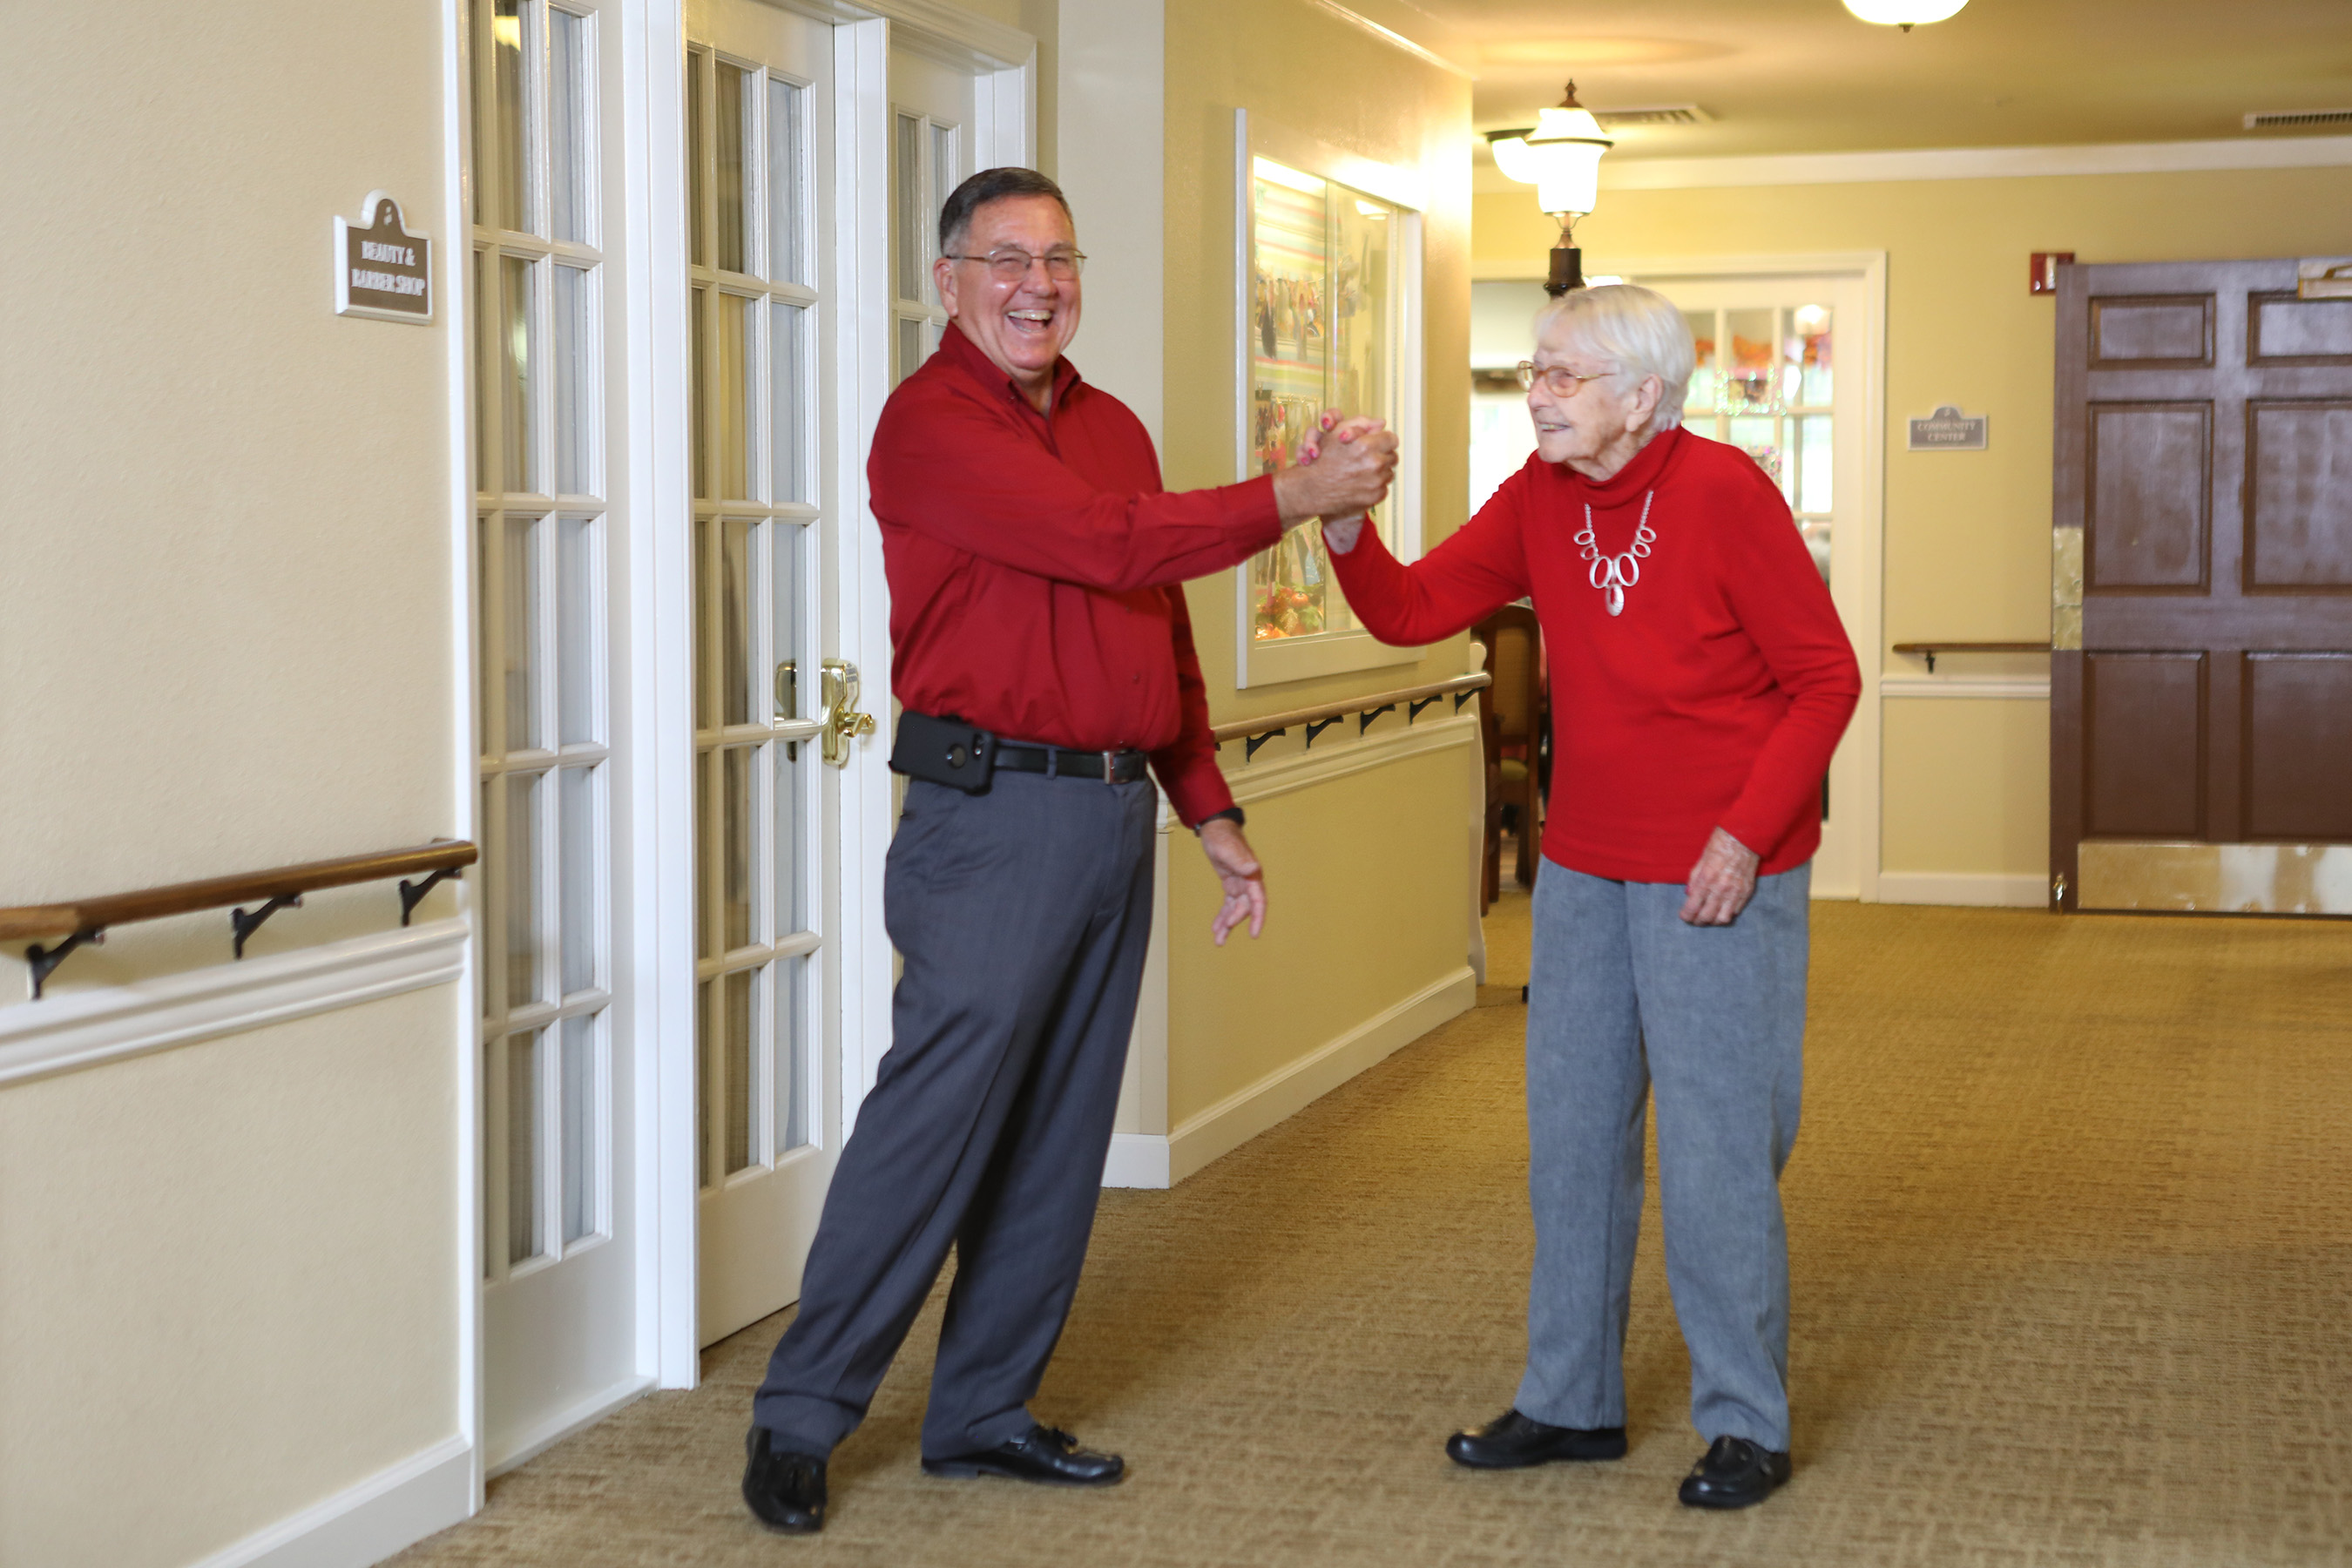 Dorothy's son, Gary, visits her often at Brookdale College Square. They enjoy taking walks and participating in activities.